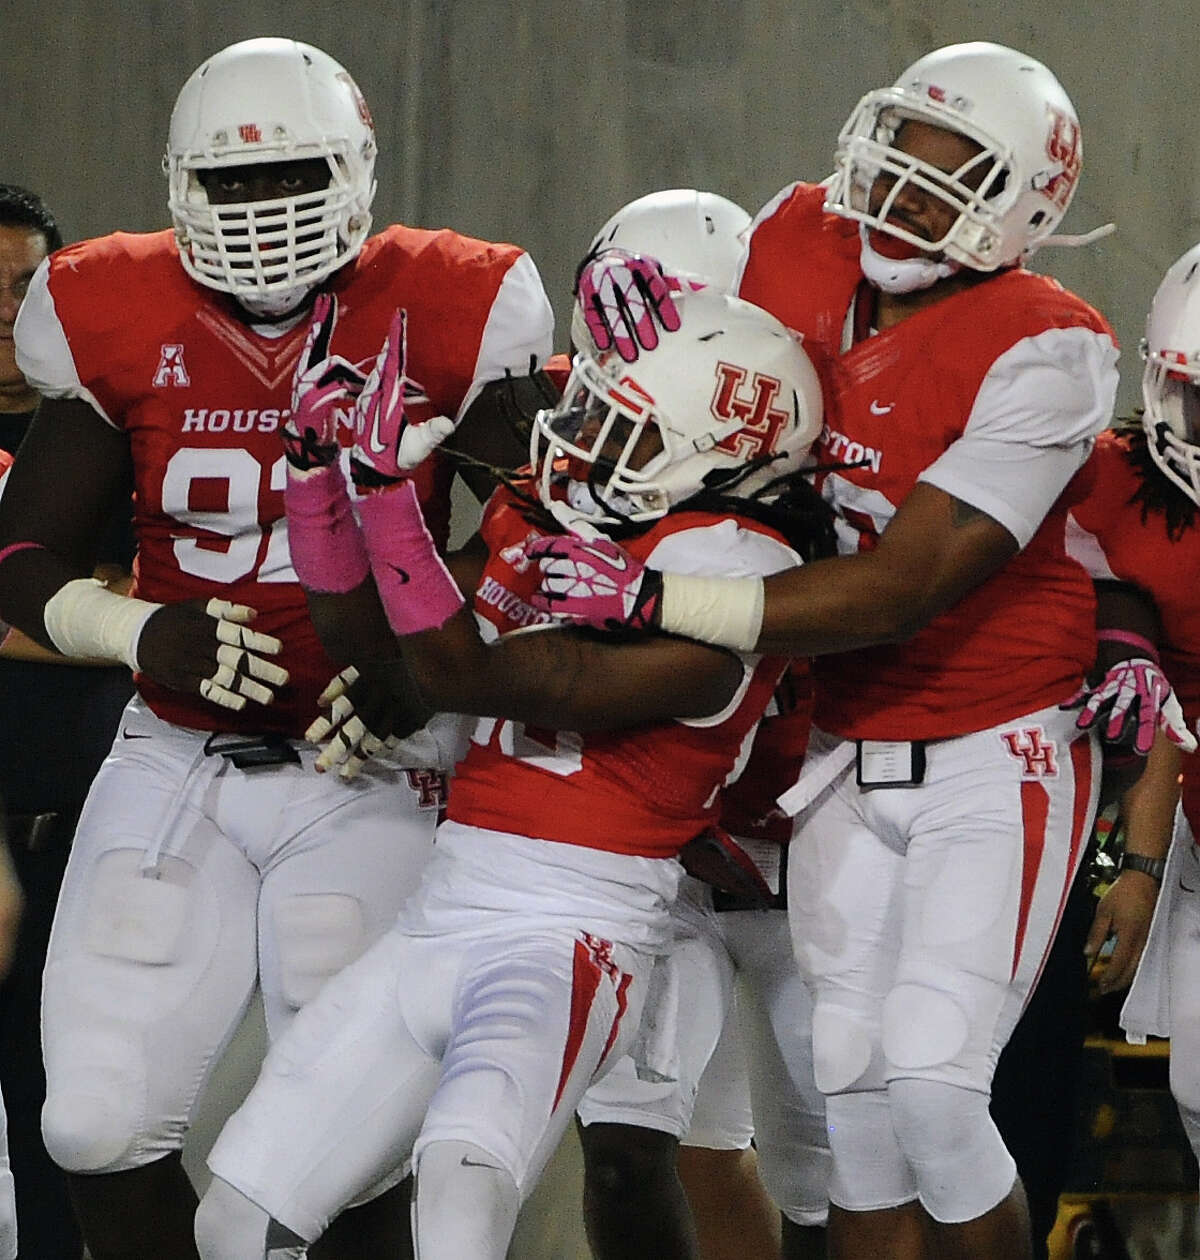 Houston defensive back Trevon Stewart, center, celebrates his 29-yard interception for a touchdown during the first half of a college football game against Temple, Friday, October 17, 2014, at TDECU Stadium in Houston.